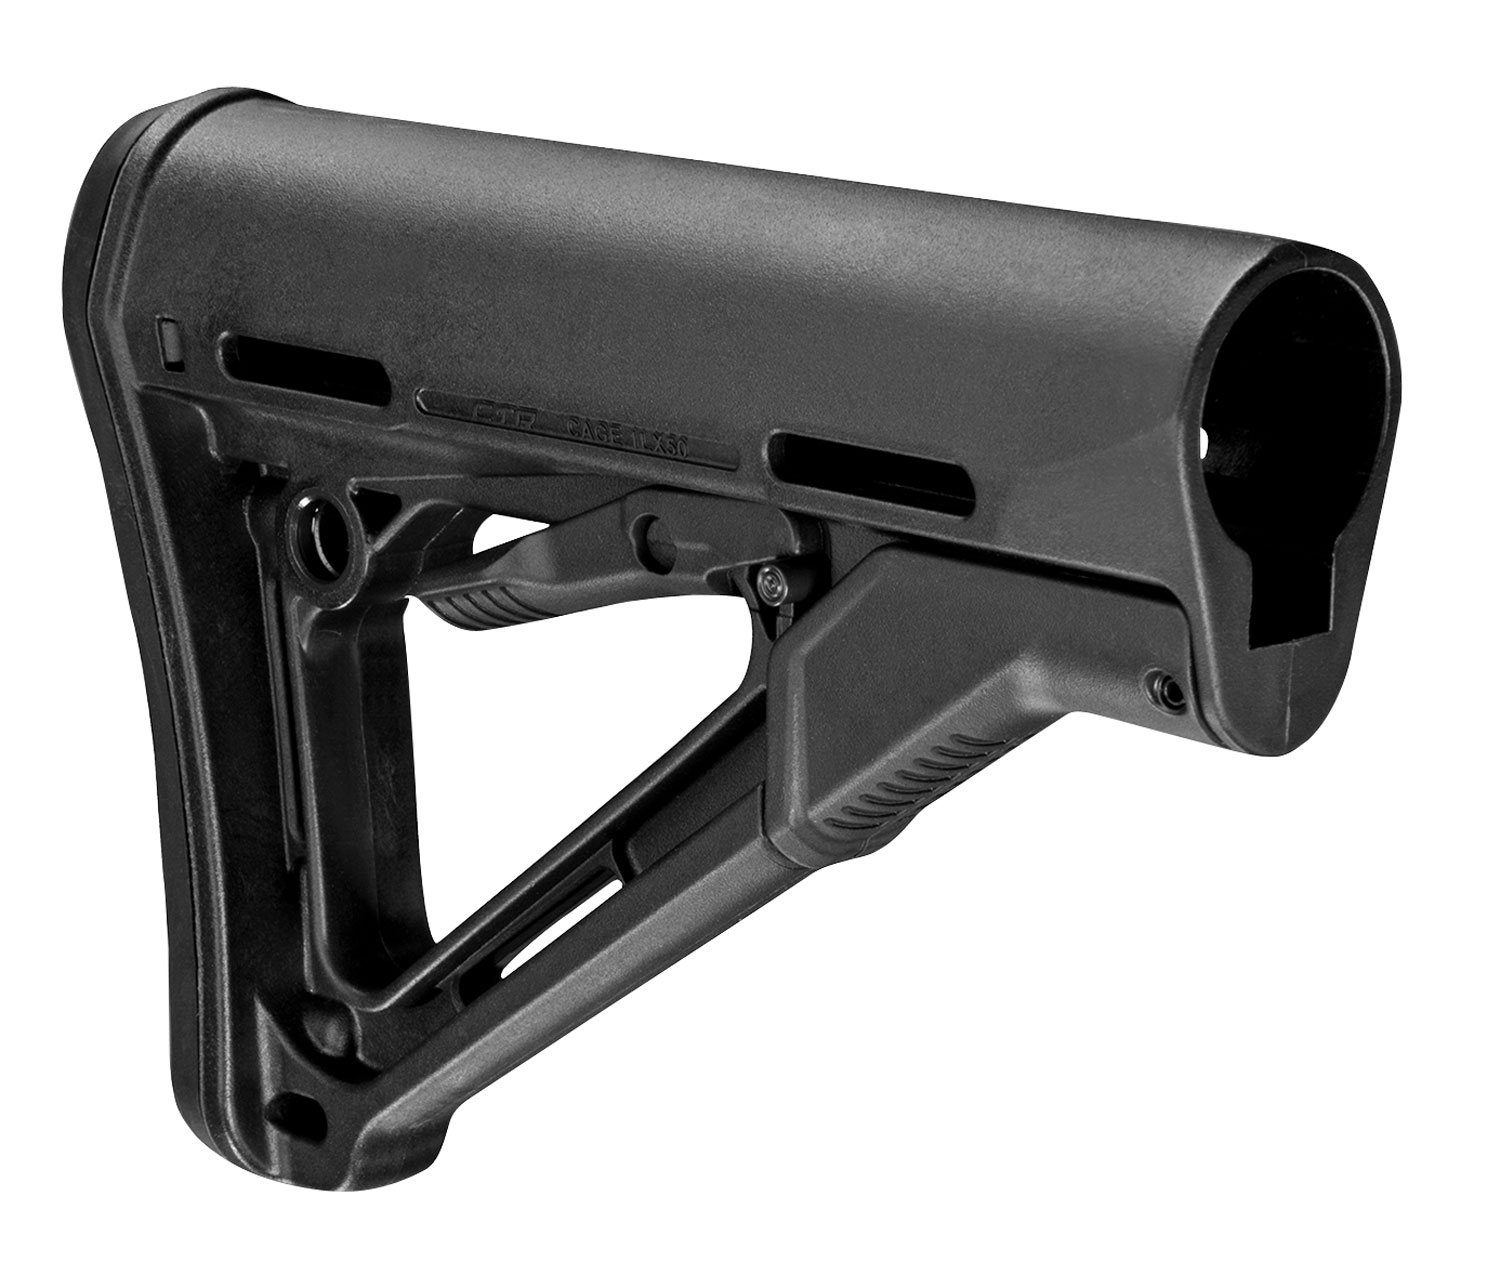 Magpul MAG310-BLK CTR Carbine Stock Black Synthetic for AR-15, M16, M4 with Mil-Spec Tube (Tube Not Included)